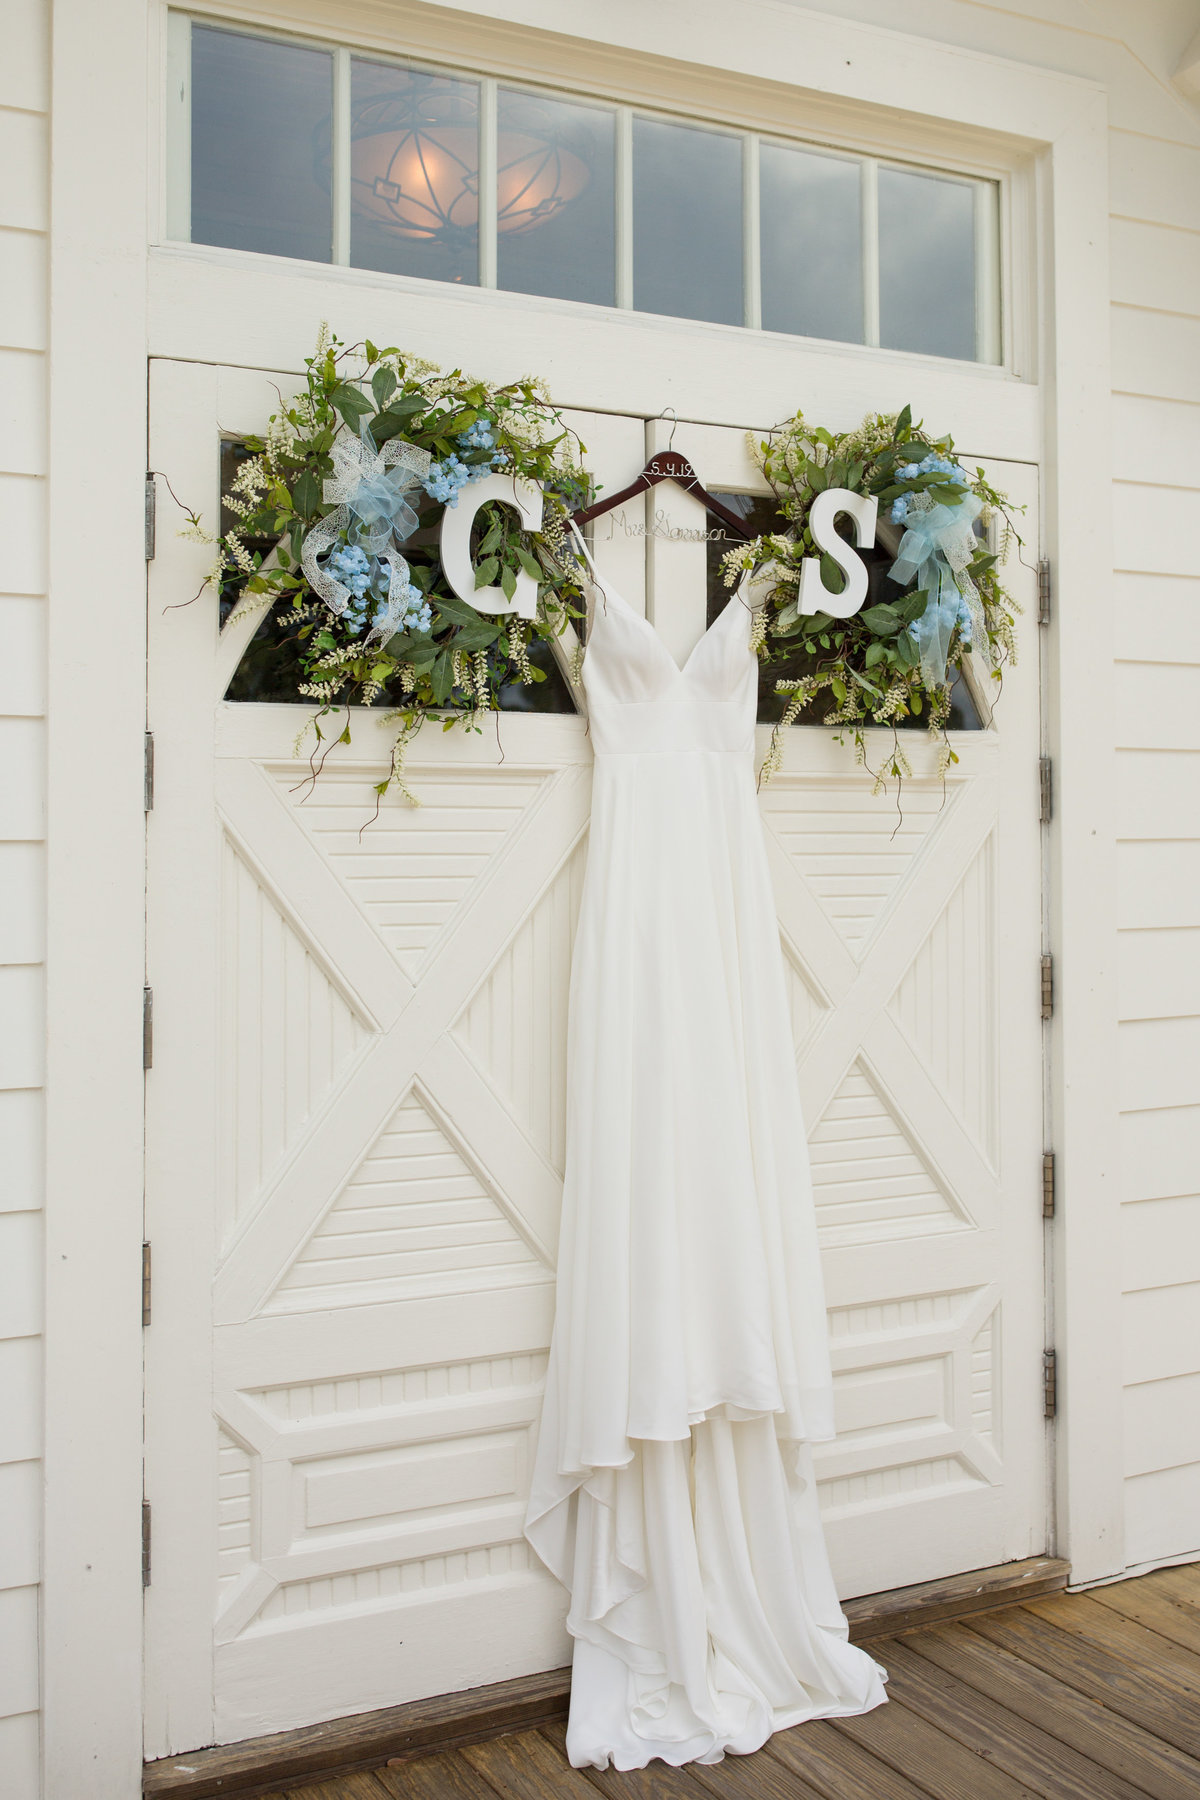 dress hanging on door of tybee chapel